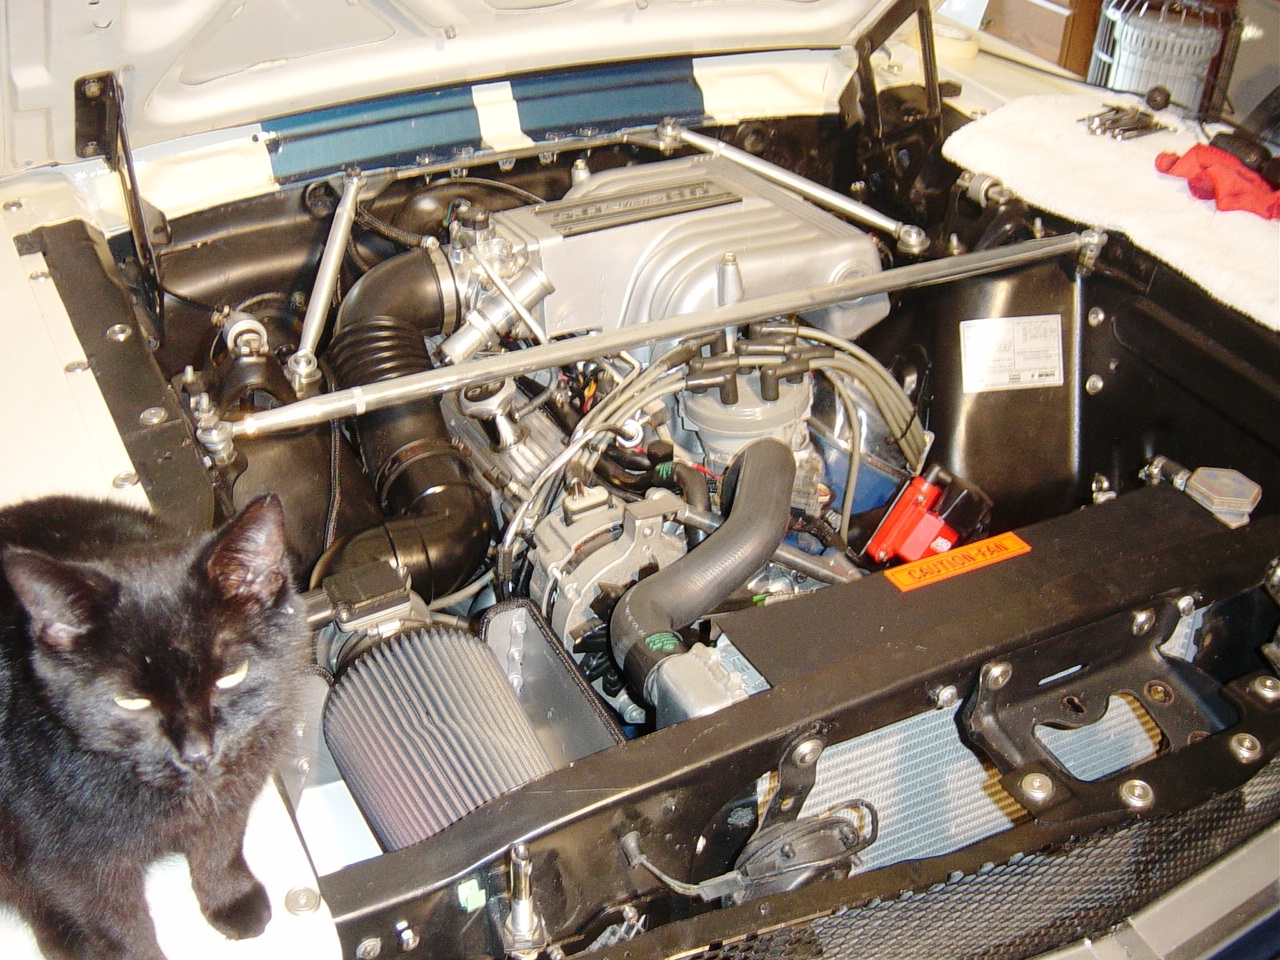 2011Mods3 68 coupe conversion from 289 2v to 89 5 0 efi vintage mustang forums Mustang LS Swap at gsmportal.co